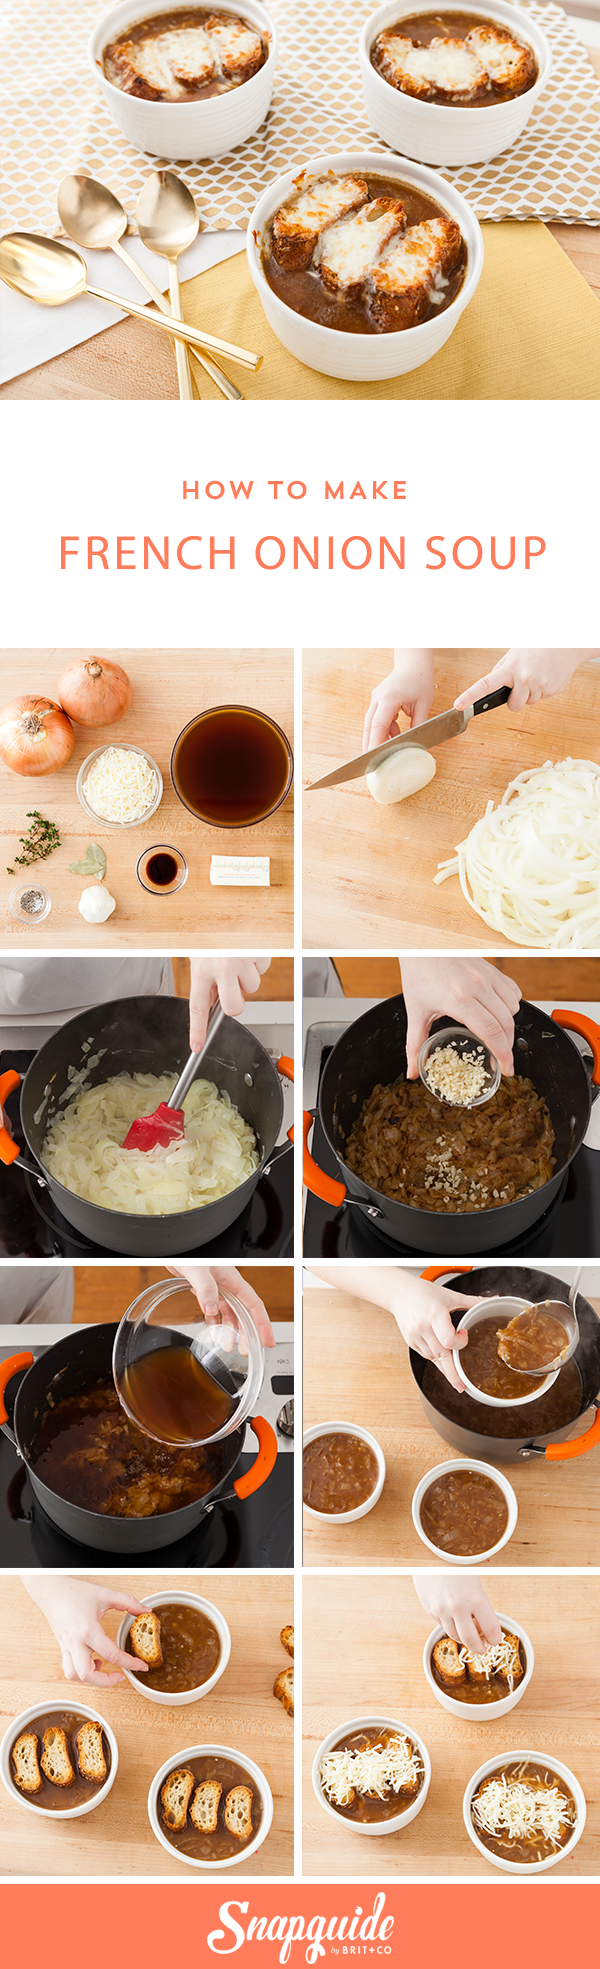 How to make french onion soup recipe onion soups onions and dinners how to make french onion soup french food recipesfrench recipes dinnerfall forumfinder Image collections